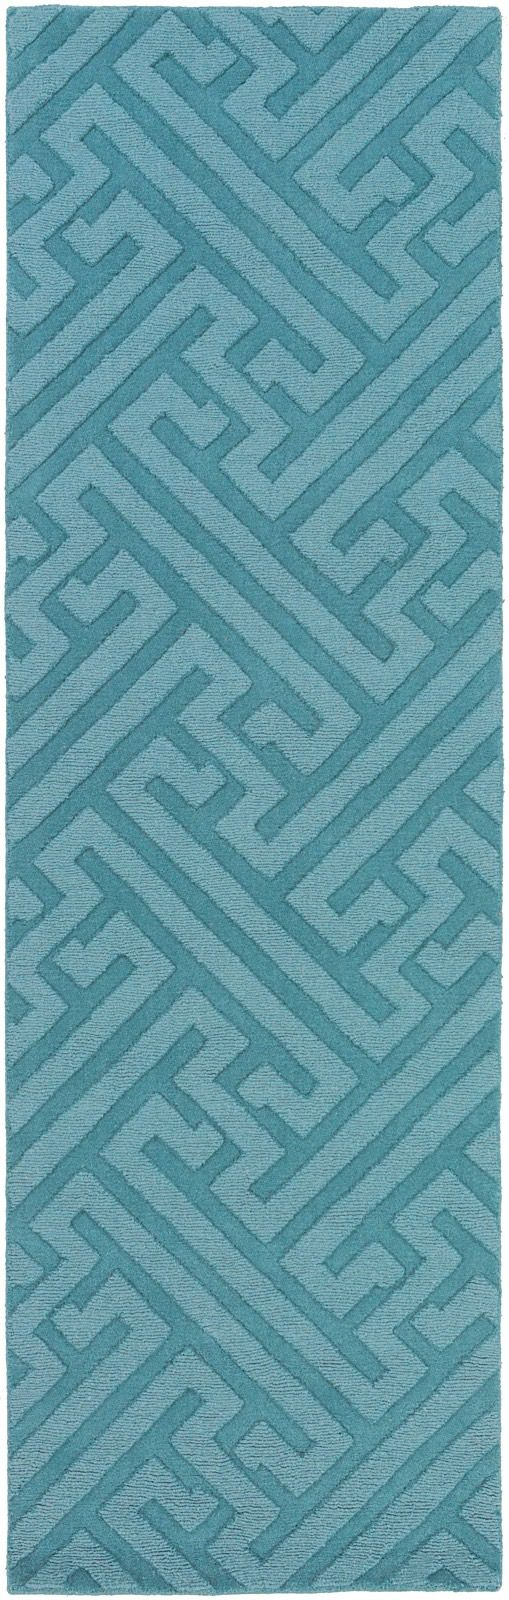 surya the oakes solid/striped area rug collection